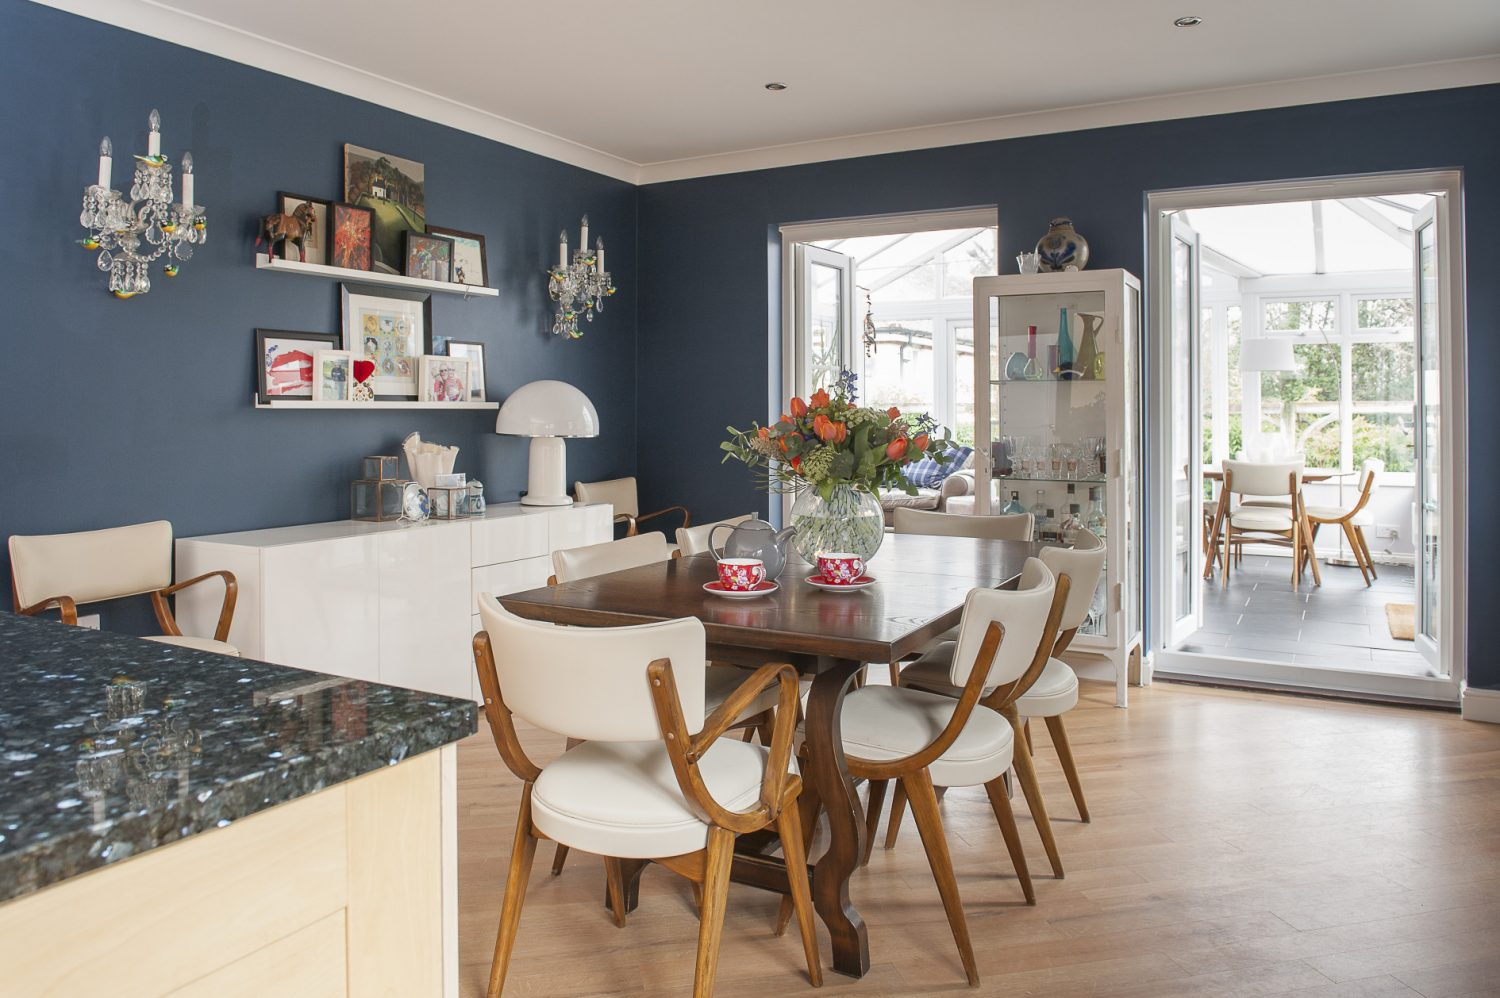 The open plan kitchen and dining room is painted a rich, deep blue